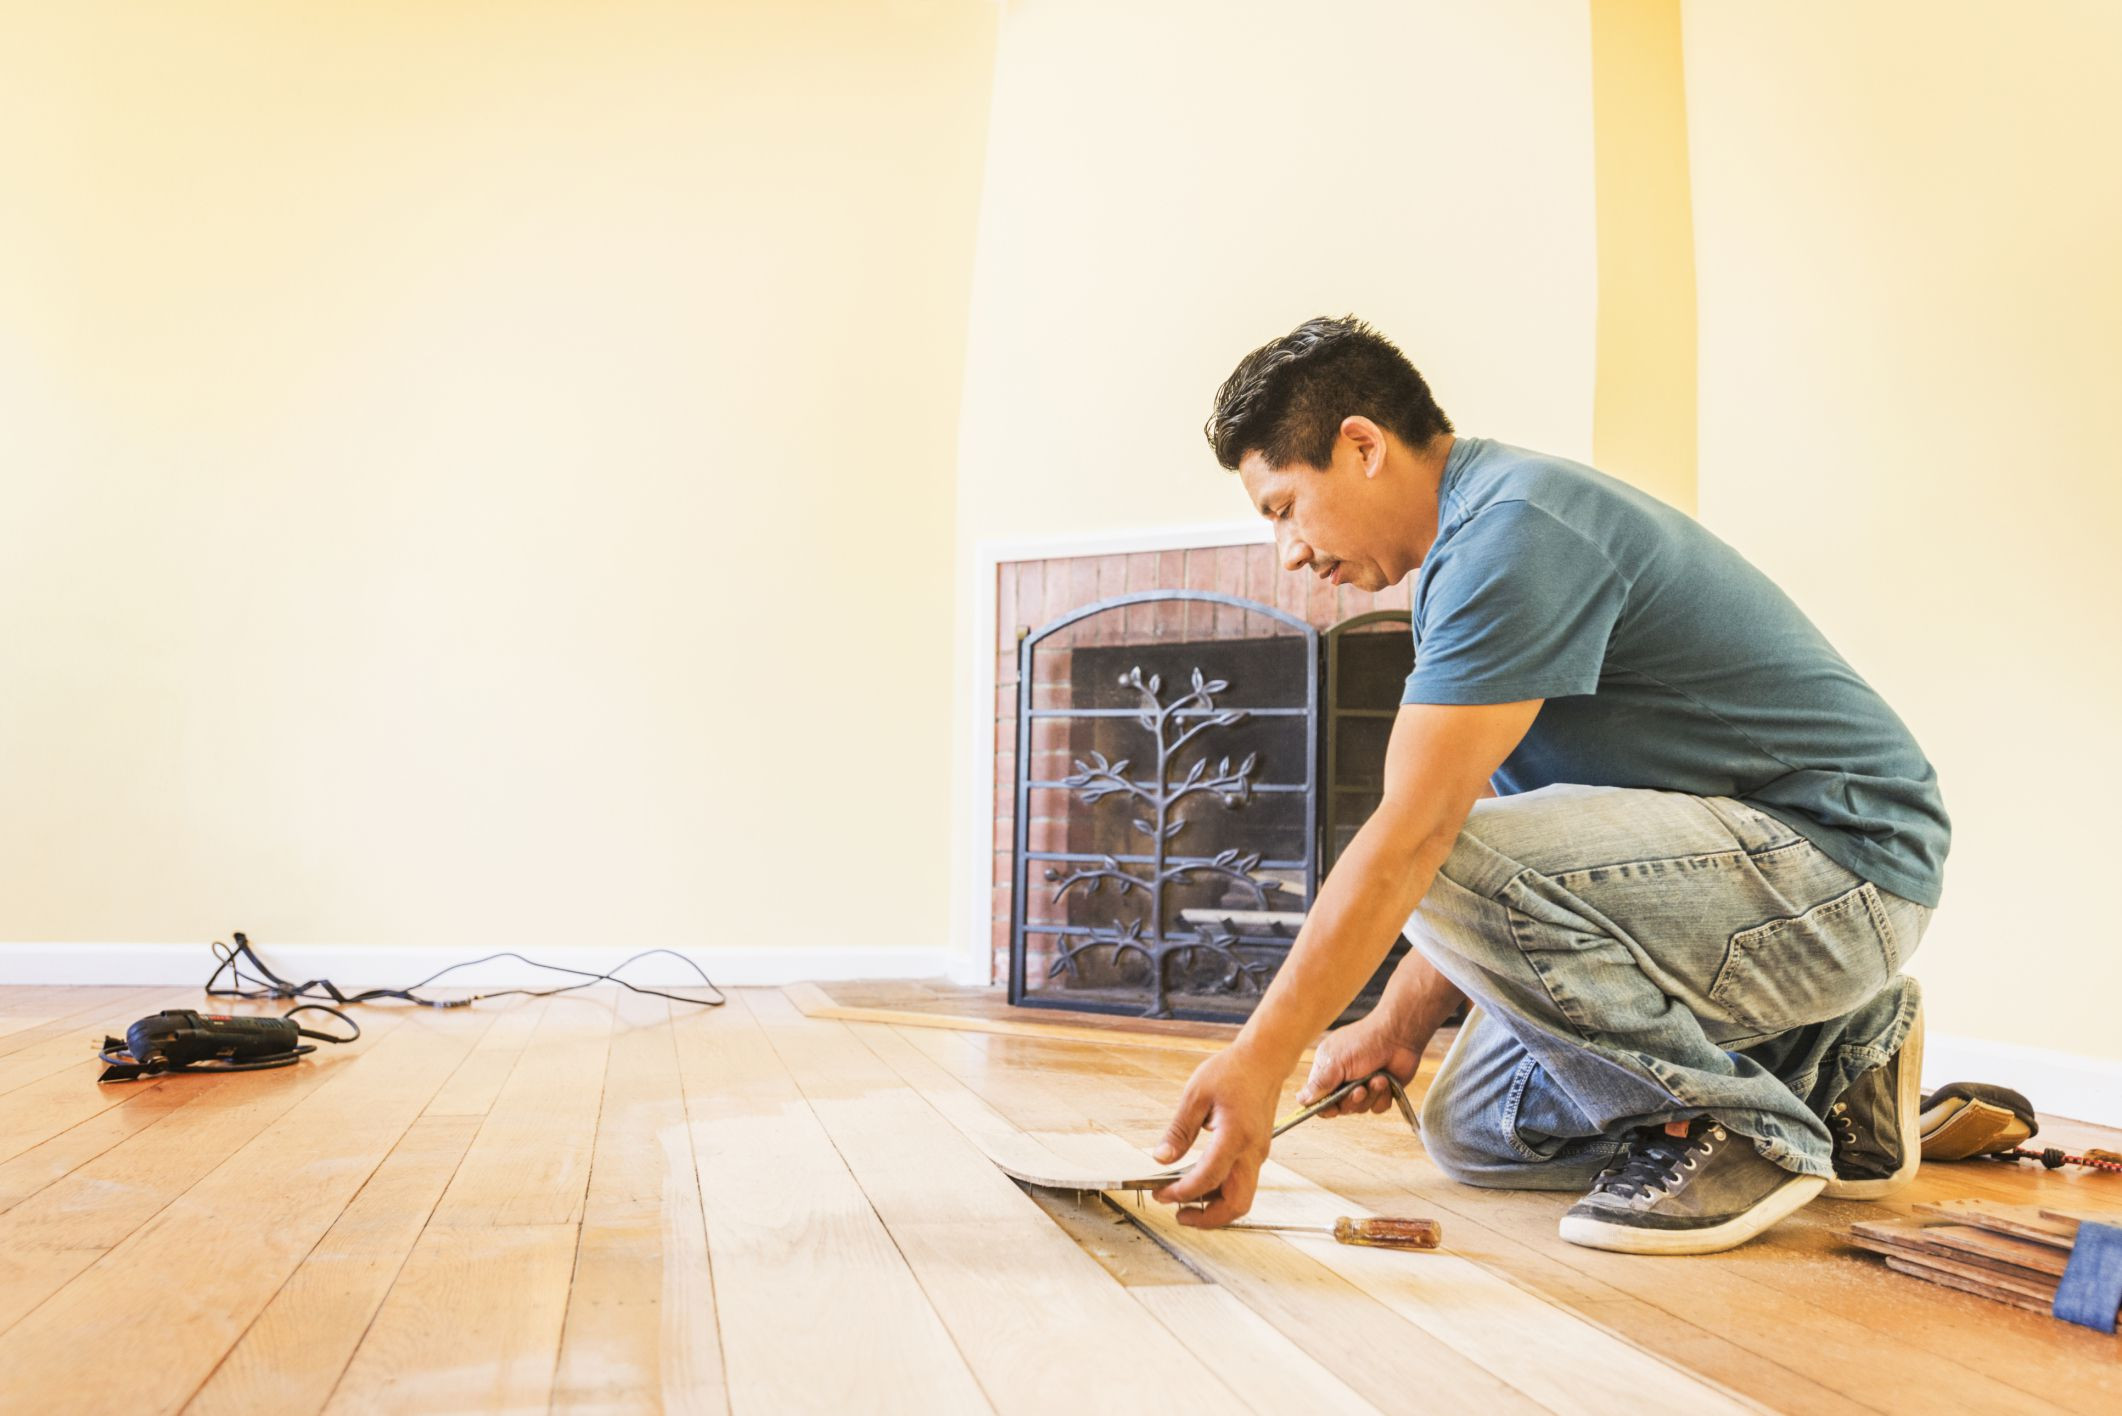 how much does it cost to refinish hardwood floors yourself of solid hardwood flooring costs for professional vs diy for installwoodflooring 592016327 56684d6f3df78ce1610a598a